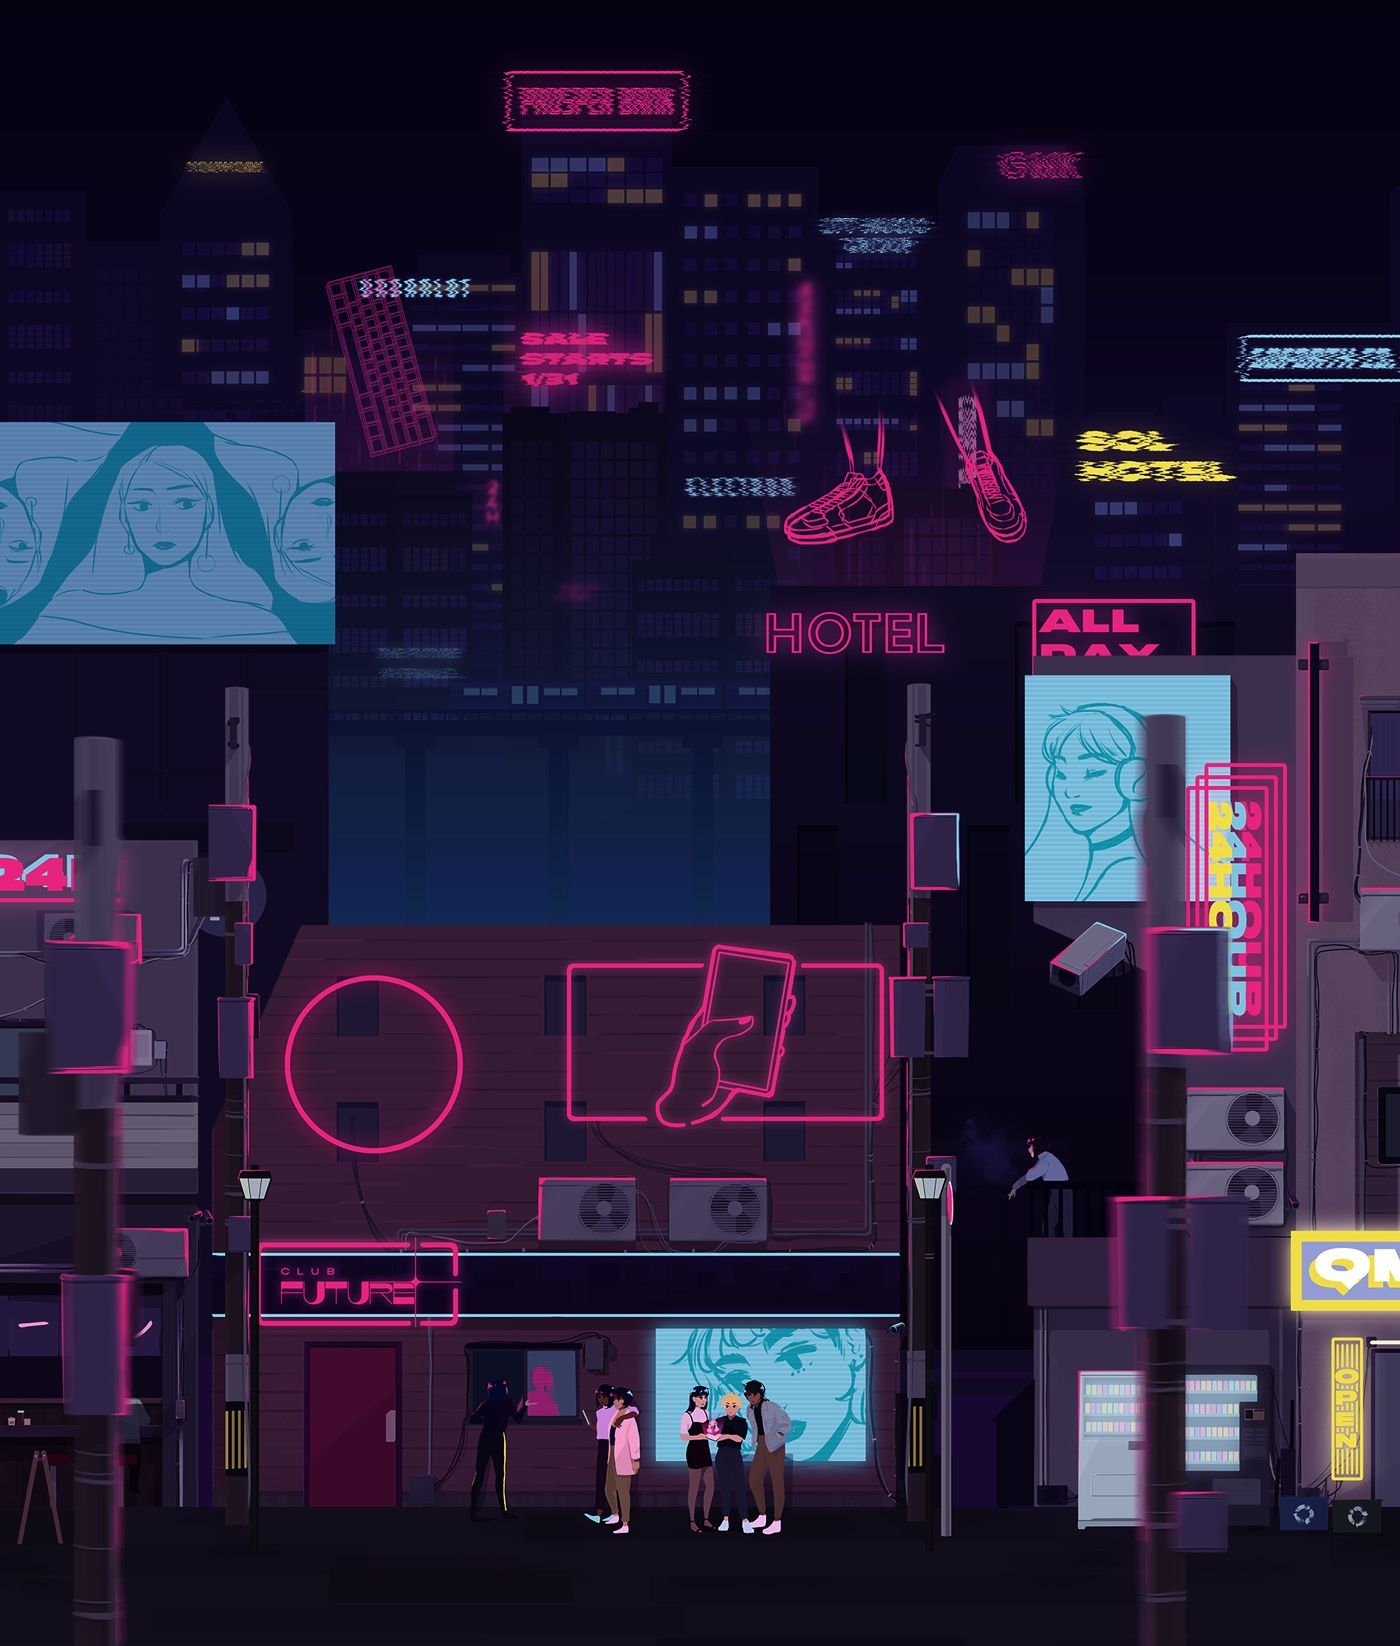 A cityscape with many floating neon lights and signs. In the front is a club with people waiting outside.